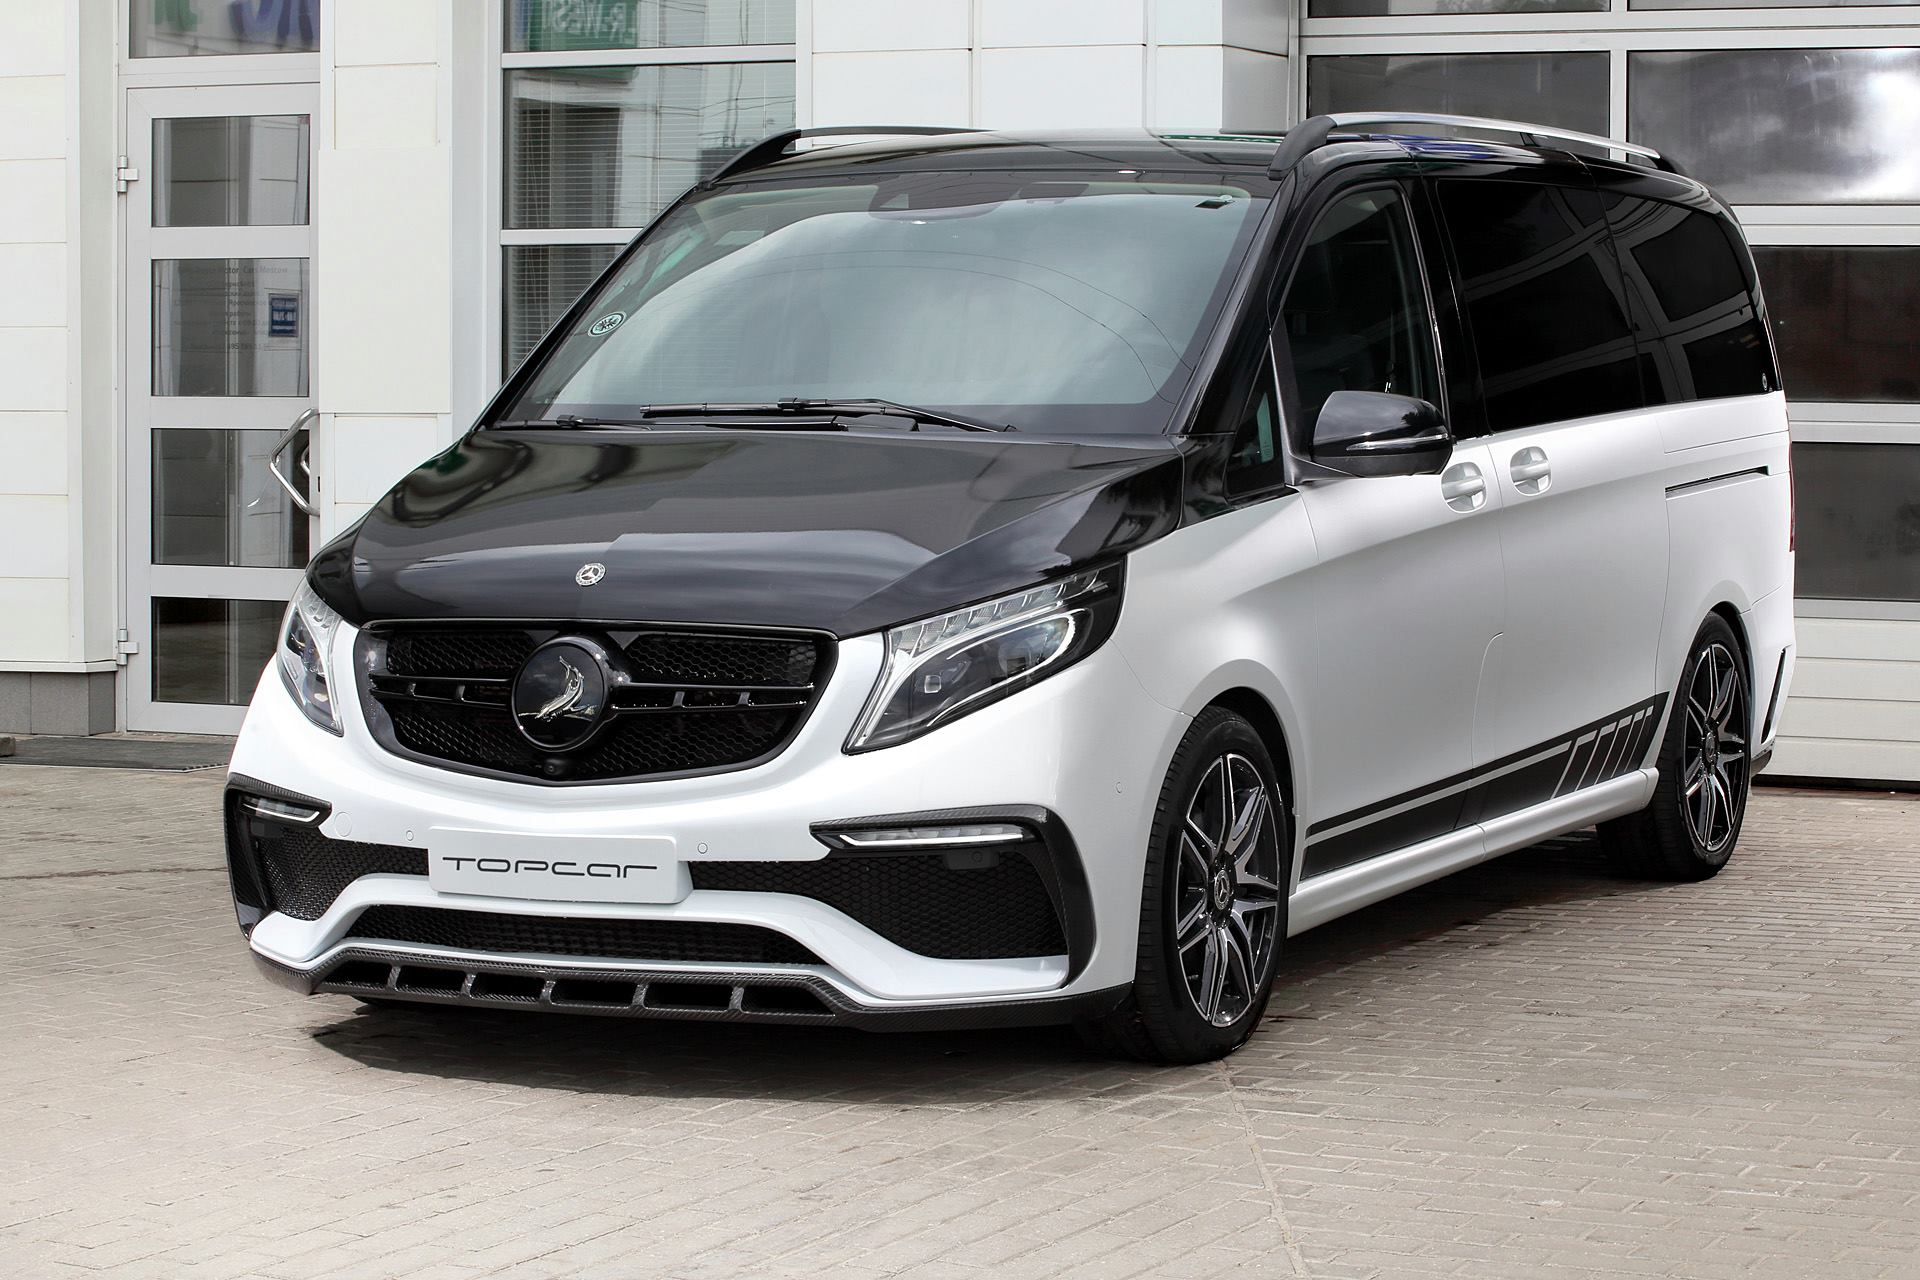 topcar mercedes v class is a carbon clad inferno van with quad exhaust autoevolution. Black Bedroom Furniture Sets. Home Design Ideas